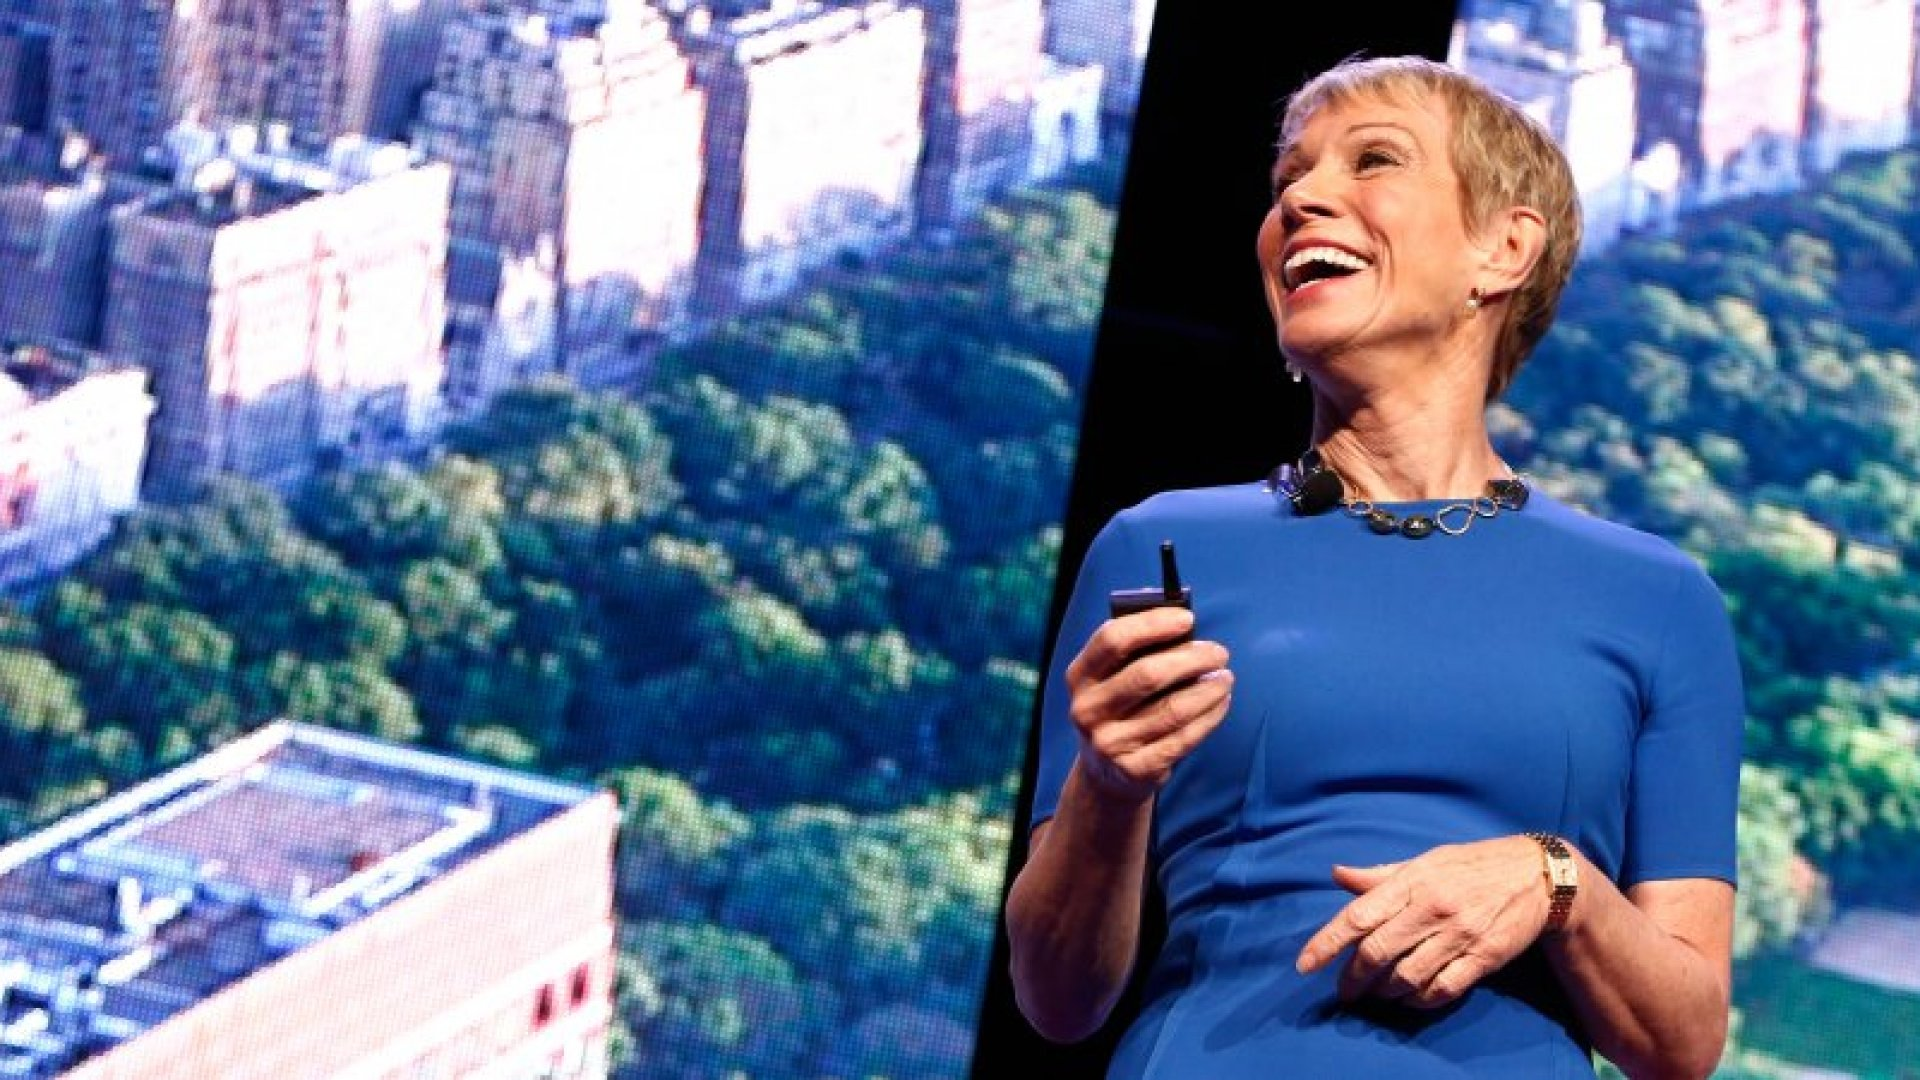 Shark Tank's Barbara Corcoran on What Motivates Better Than Money